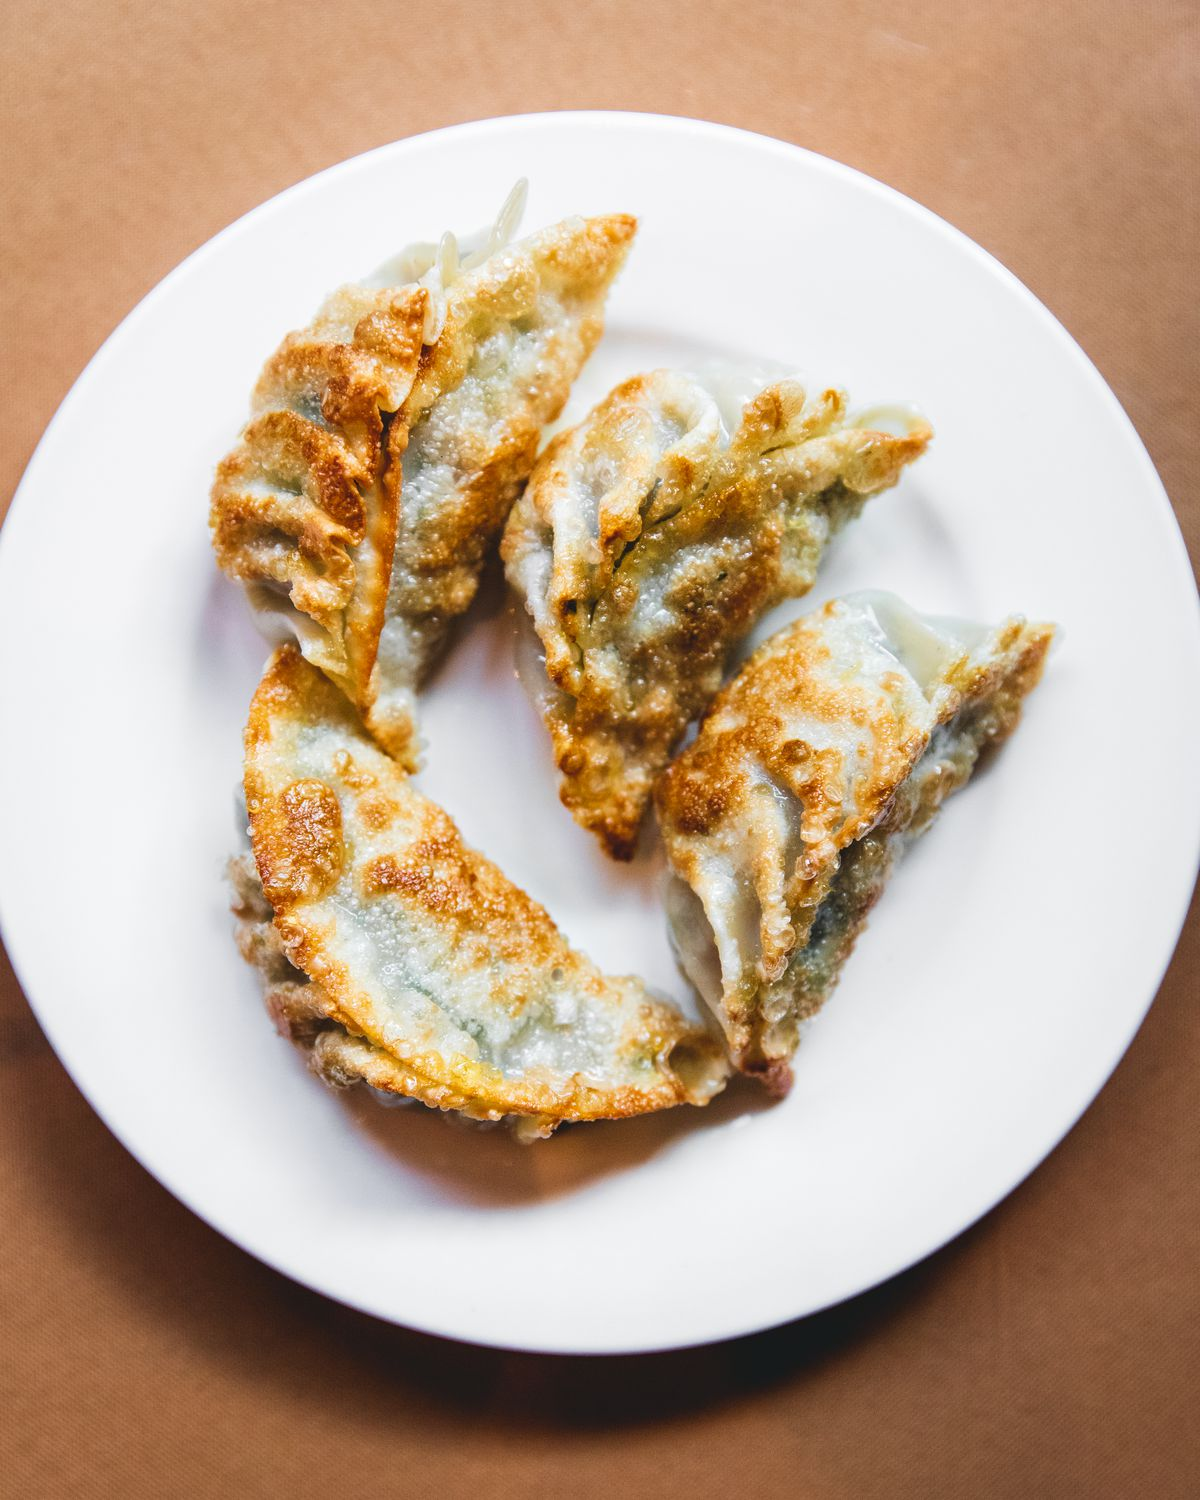 Chinese-style pan fried dumplings on a plate